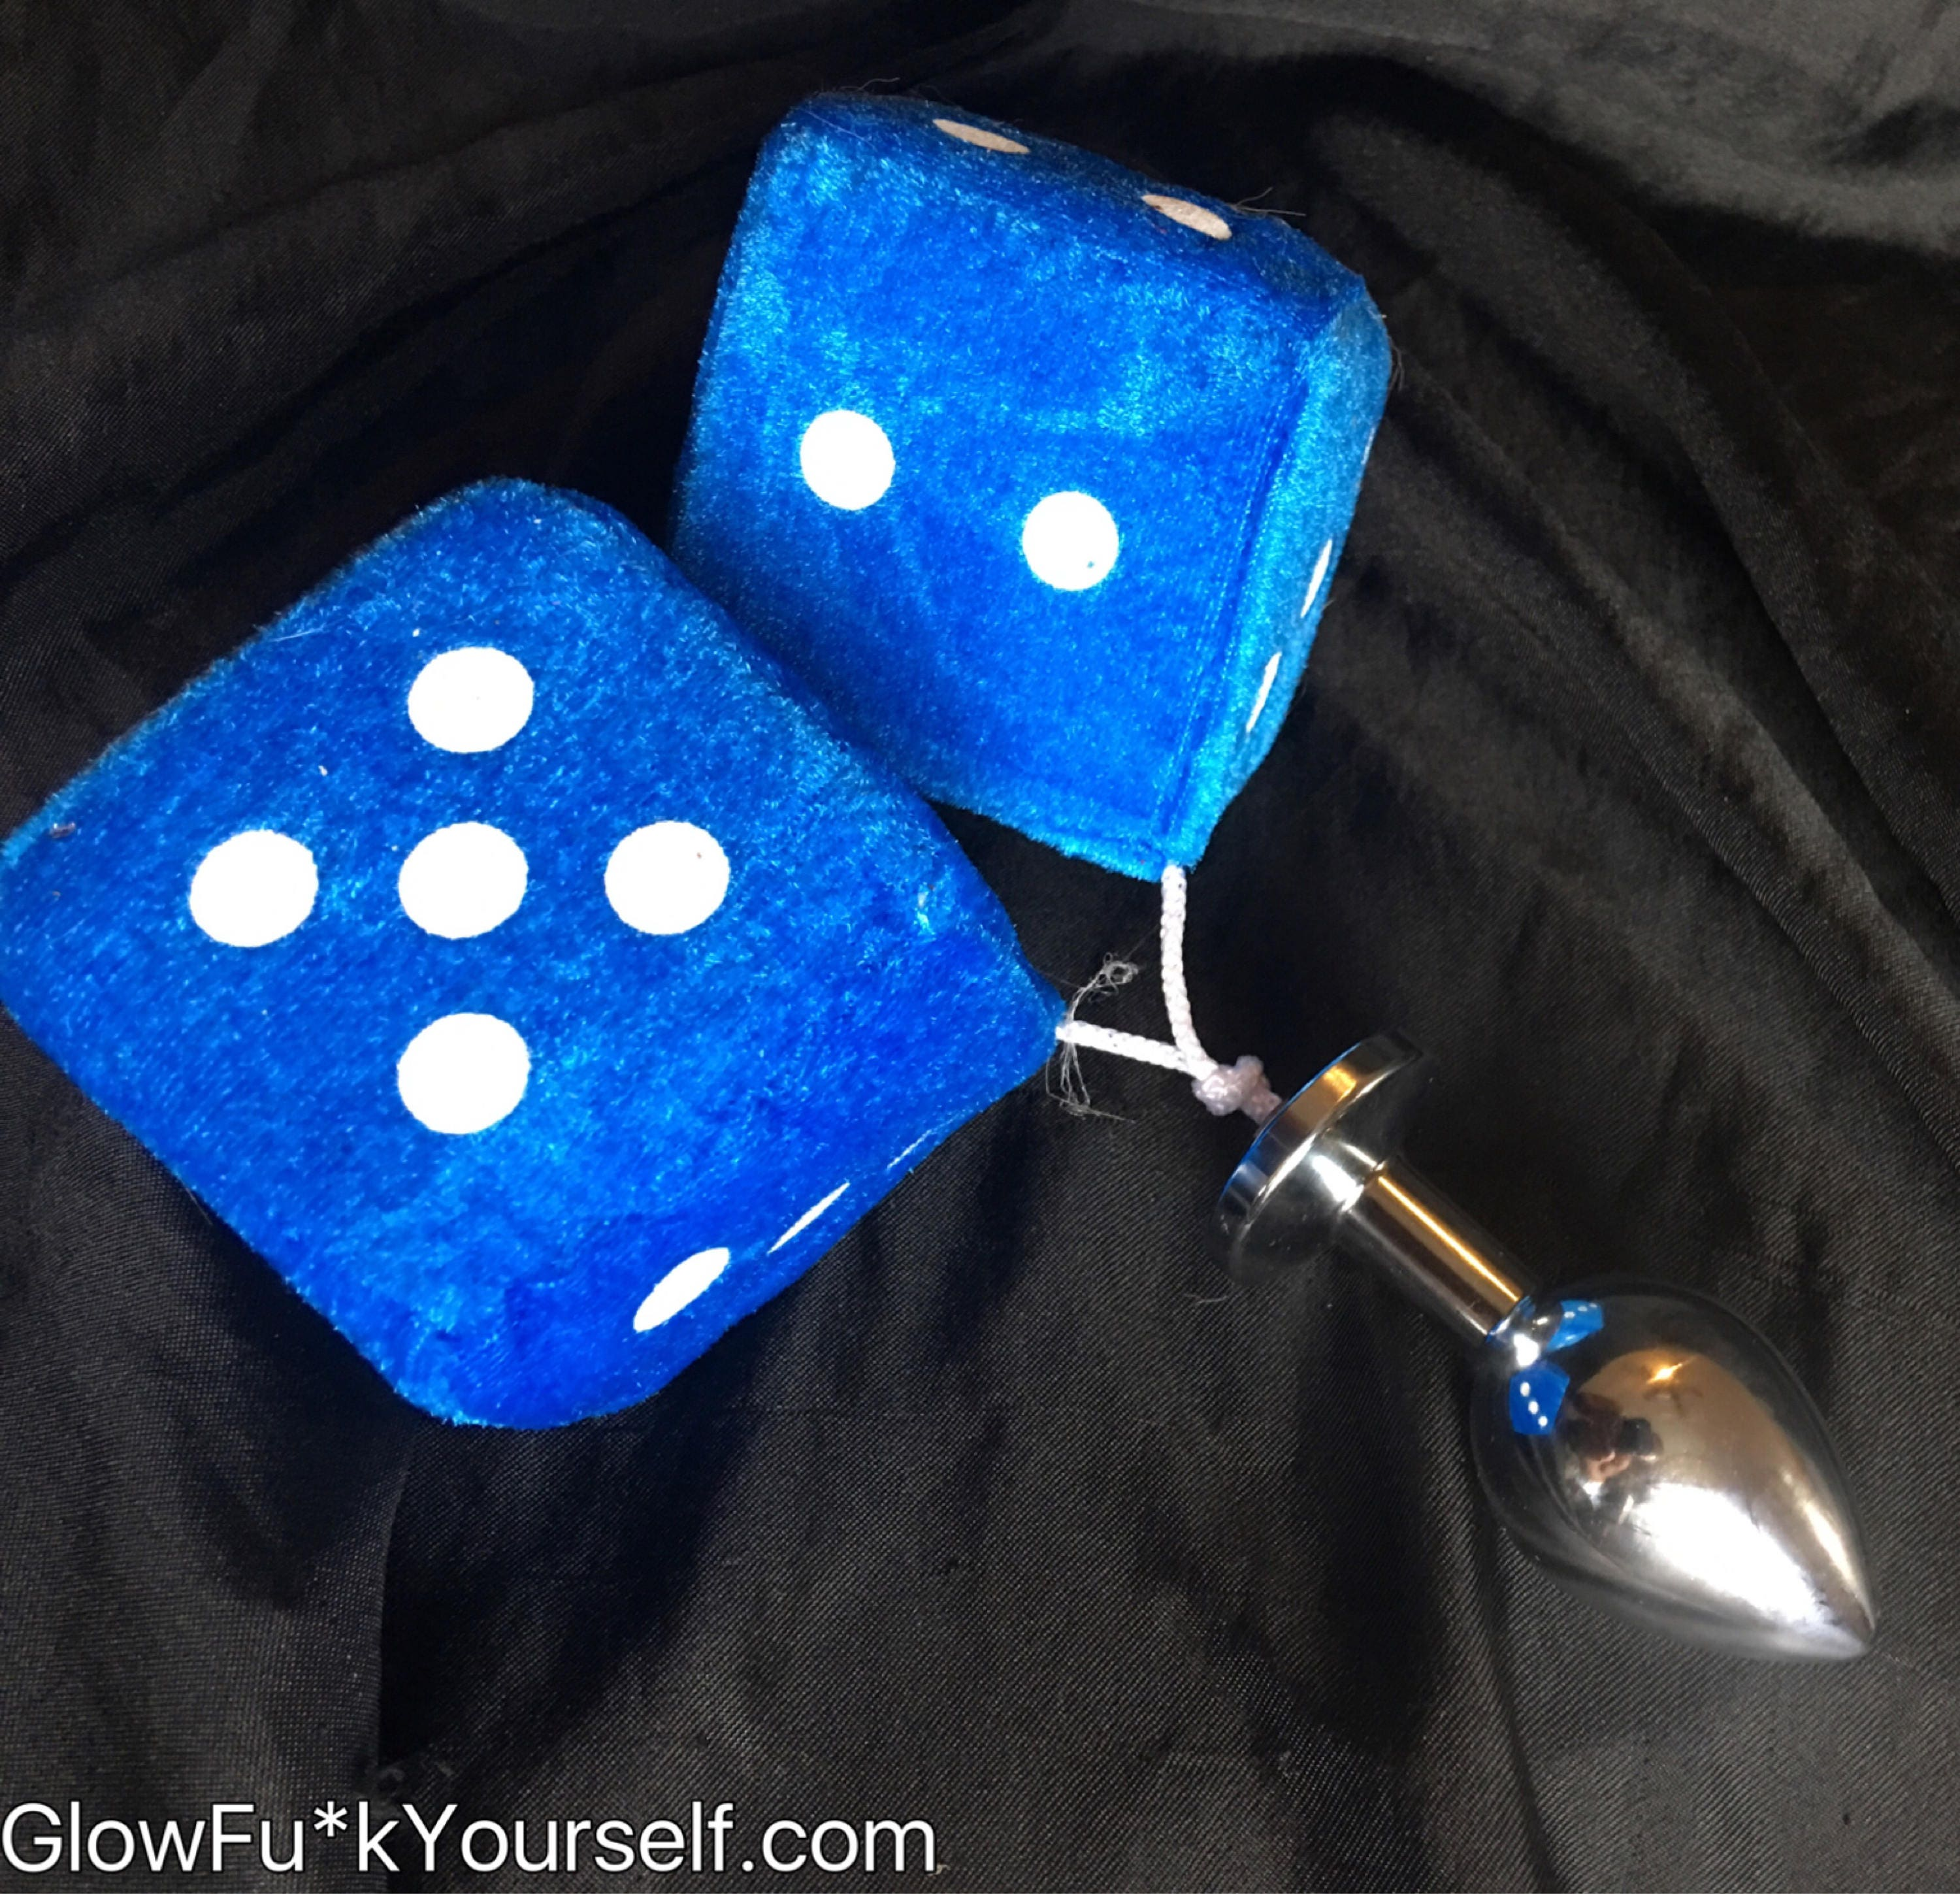 Sweet Smelling Fuzzy Booty Dice Stainless Steel Butt Plug -3002